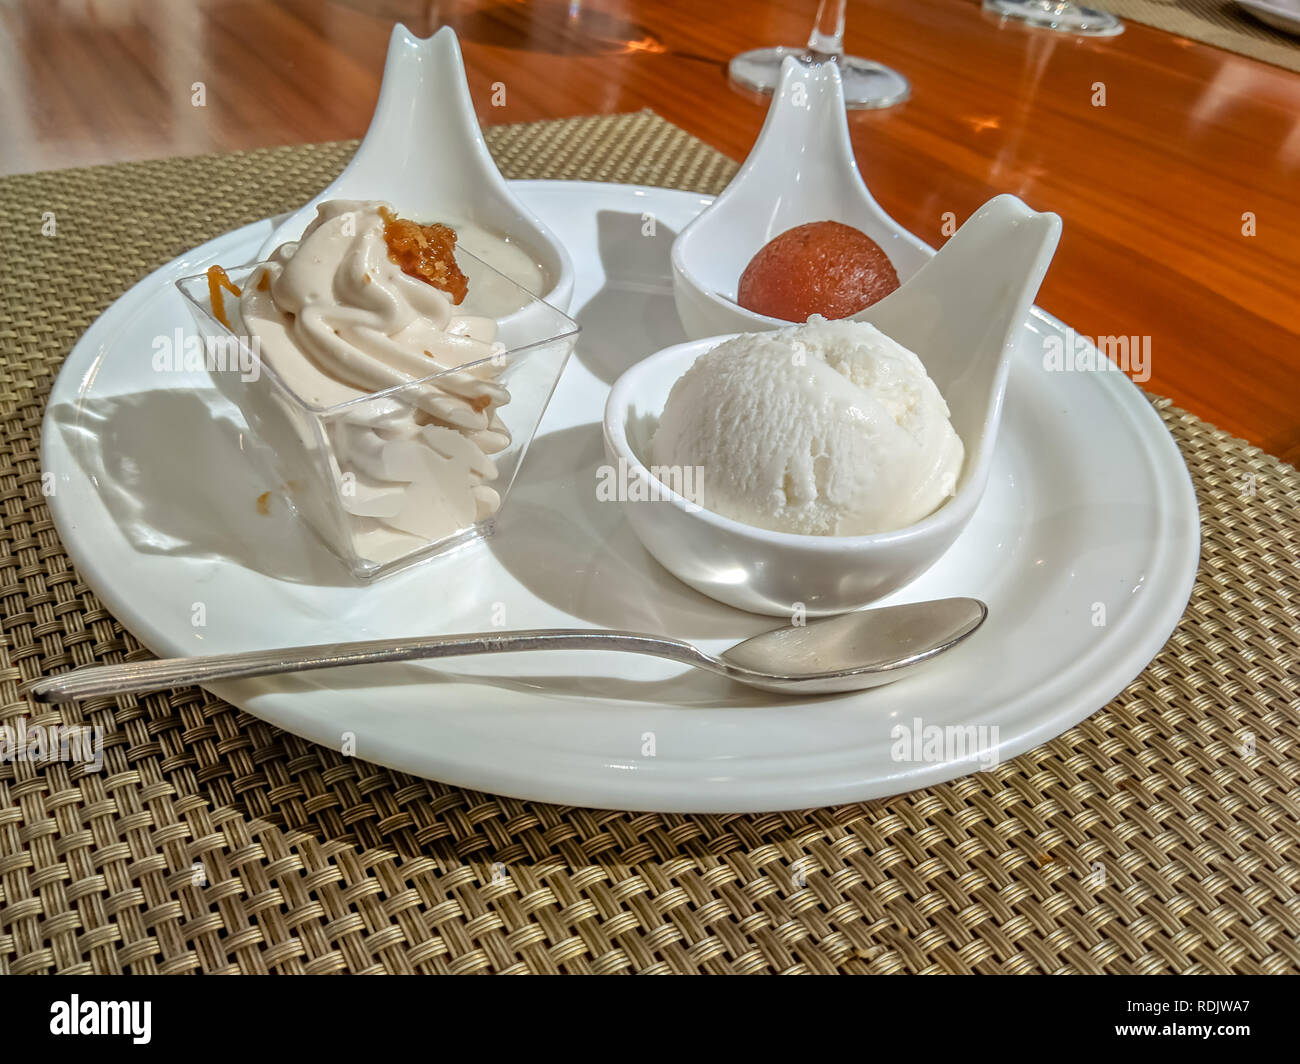 Indian sweets gulab jamun, rasgulla, payesh and cream servered in style on a wooden table Stock Photo